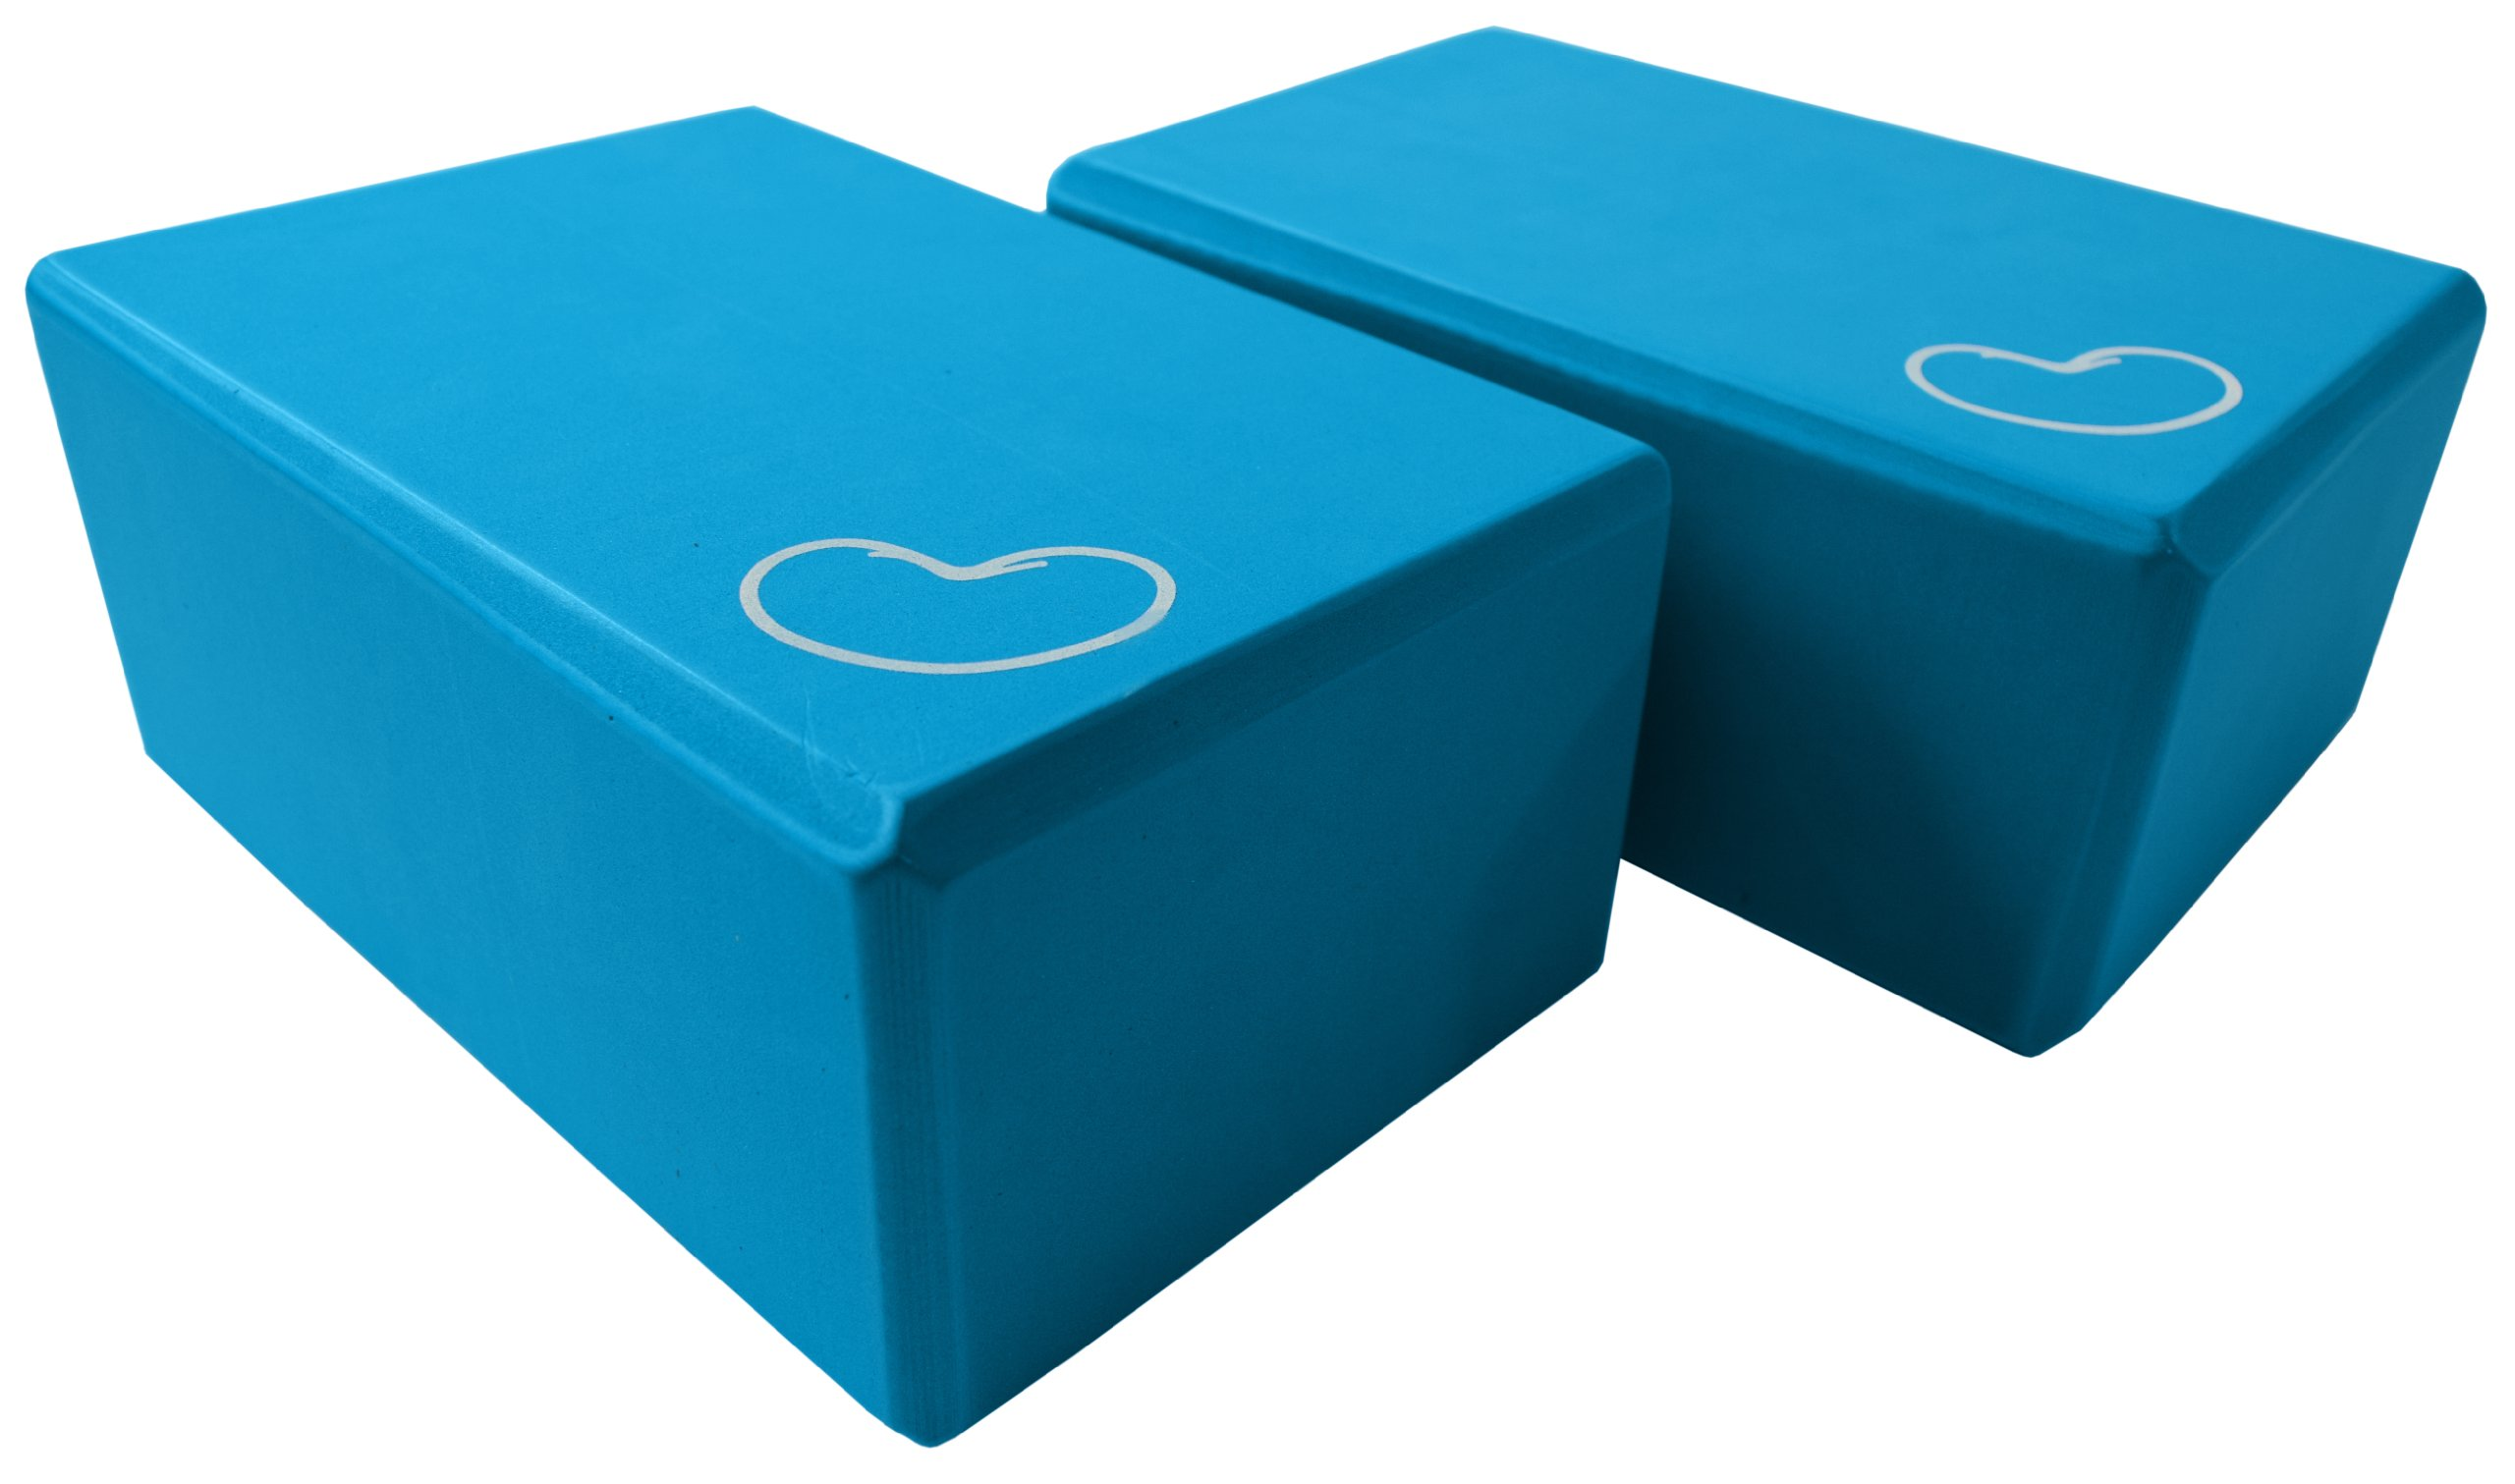 Bean Products Blue - 2 Pack - EVA Yoga Block - 3 x 6 x 9 inches